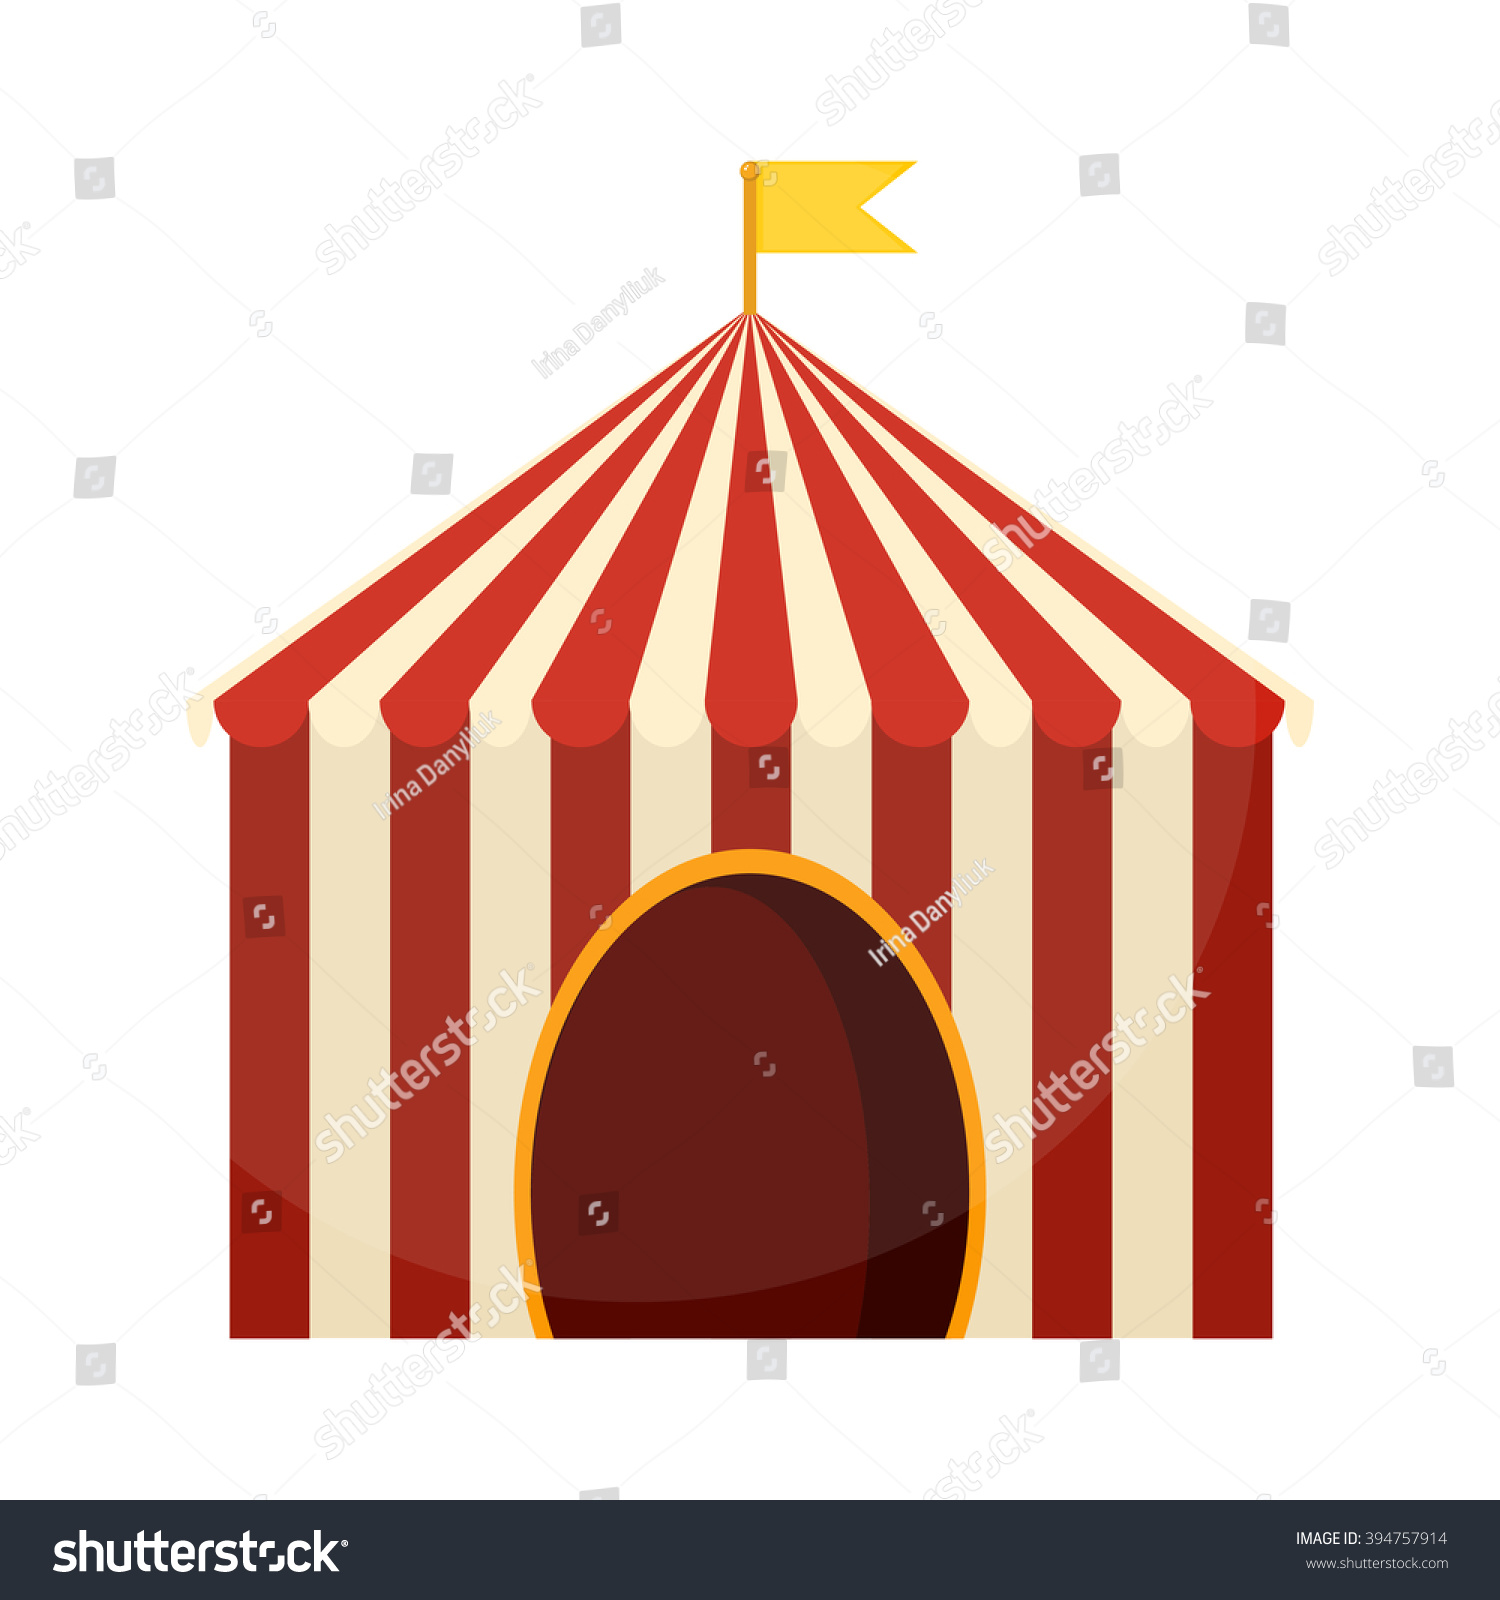 how to draw a carnival tent